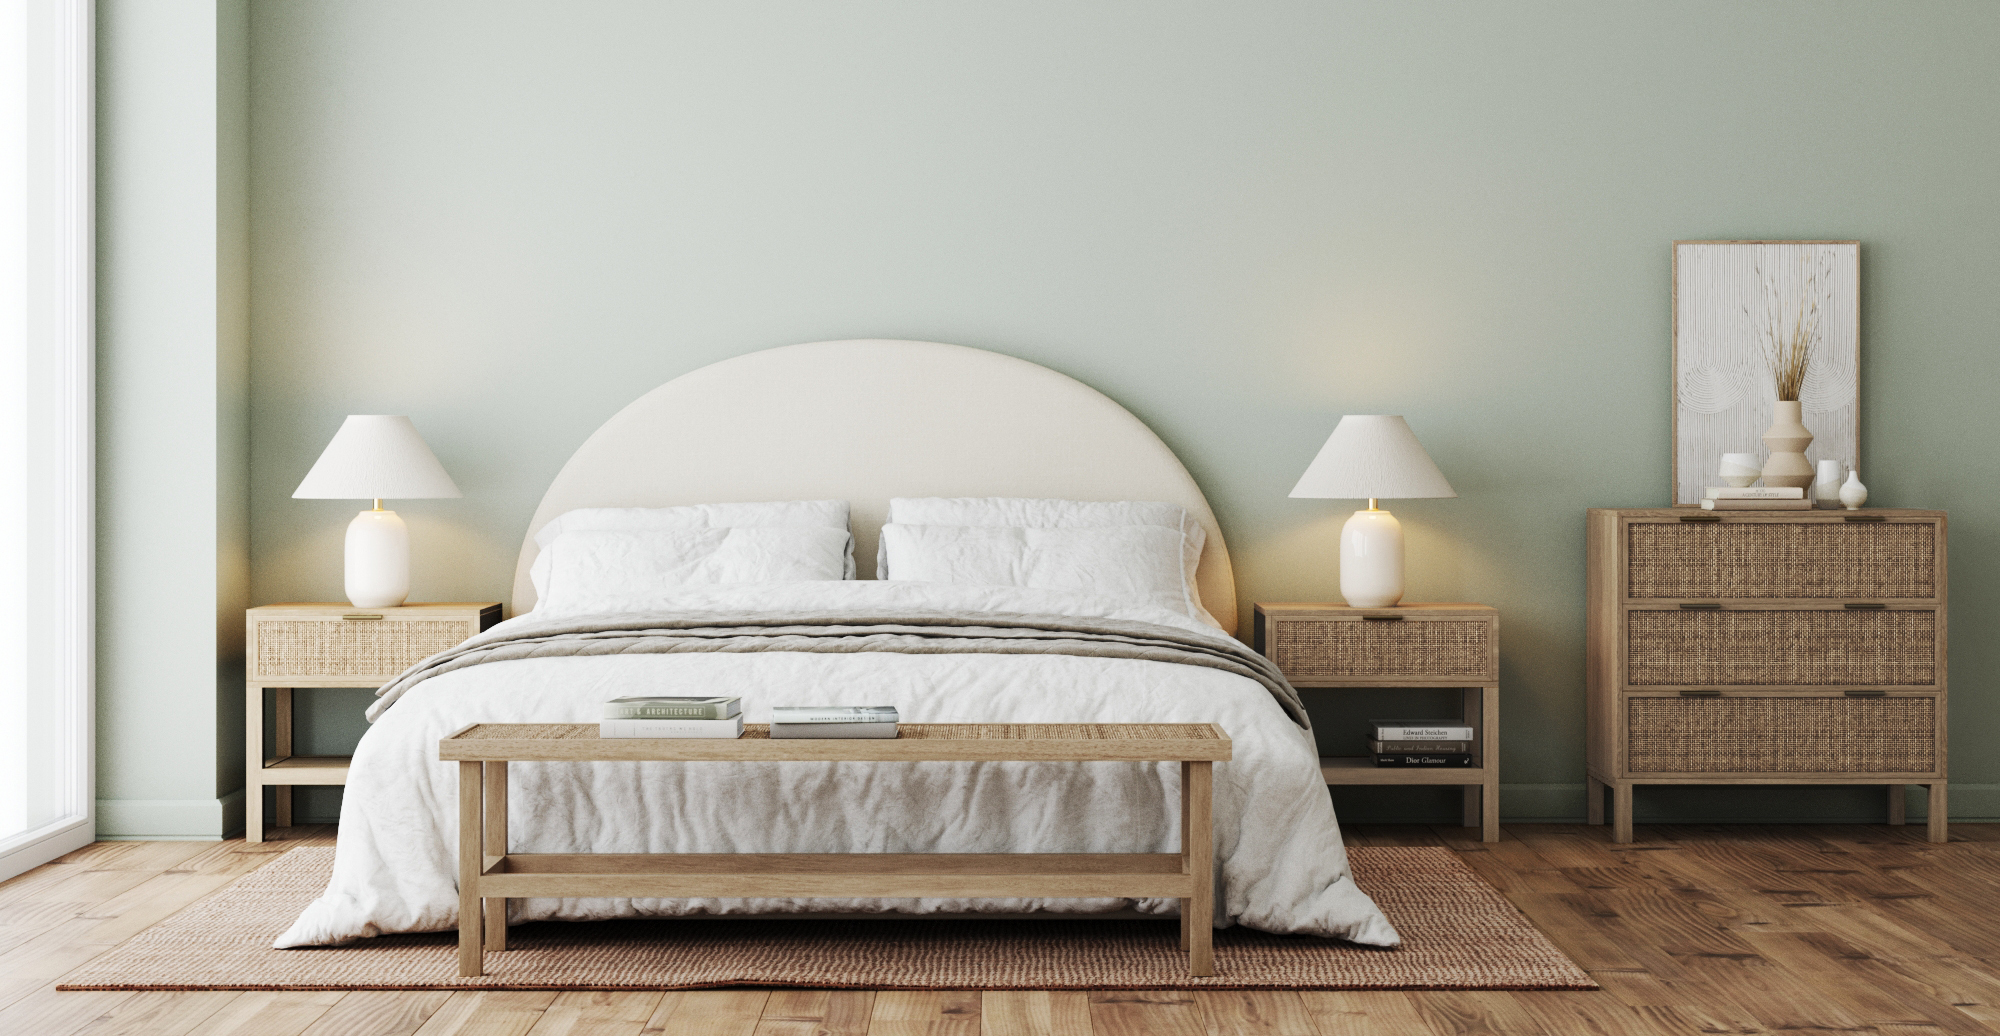 Brosa and Tint Modern Contemporary Style Bedroom